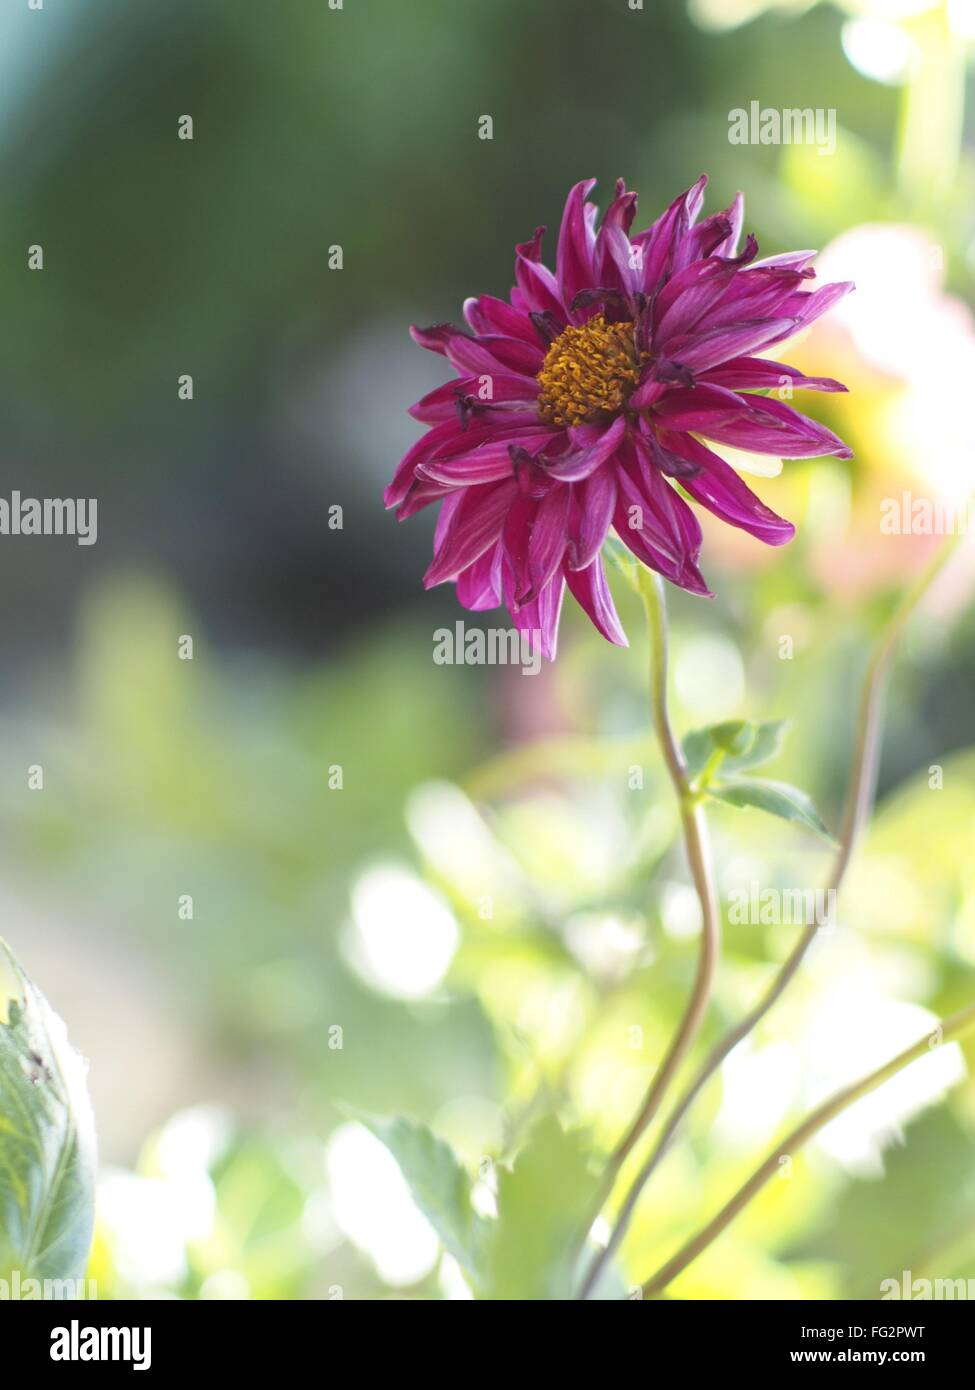 Close-Up Of Fresh Magenta Flower Blooming In Nature - Stock Image